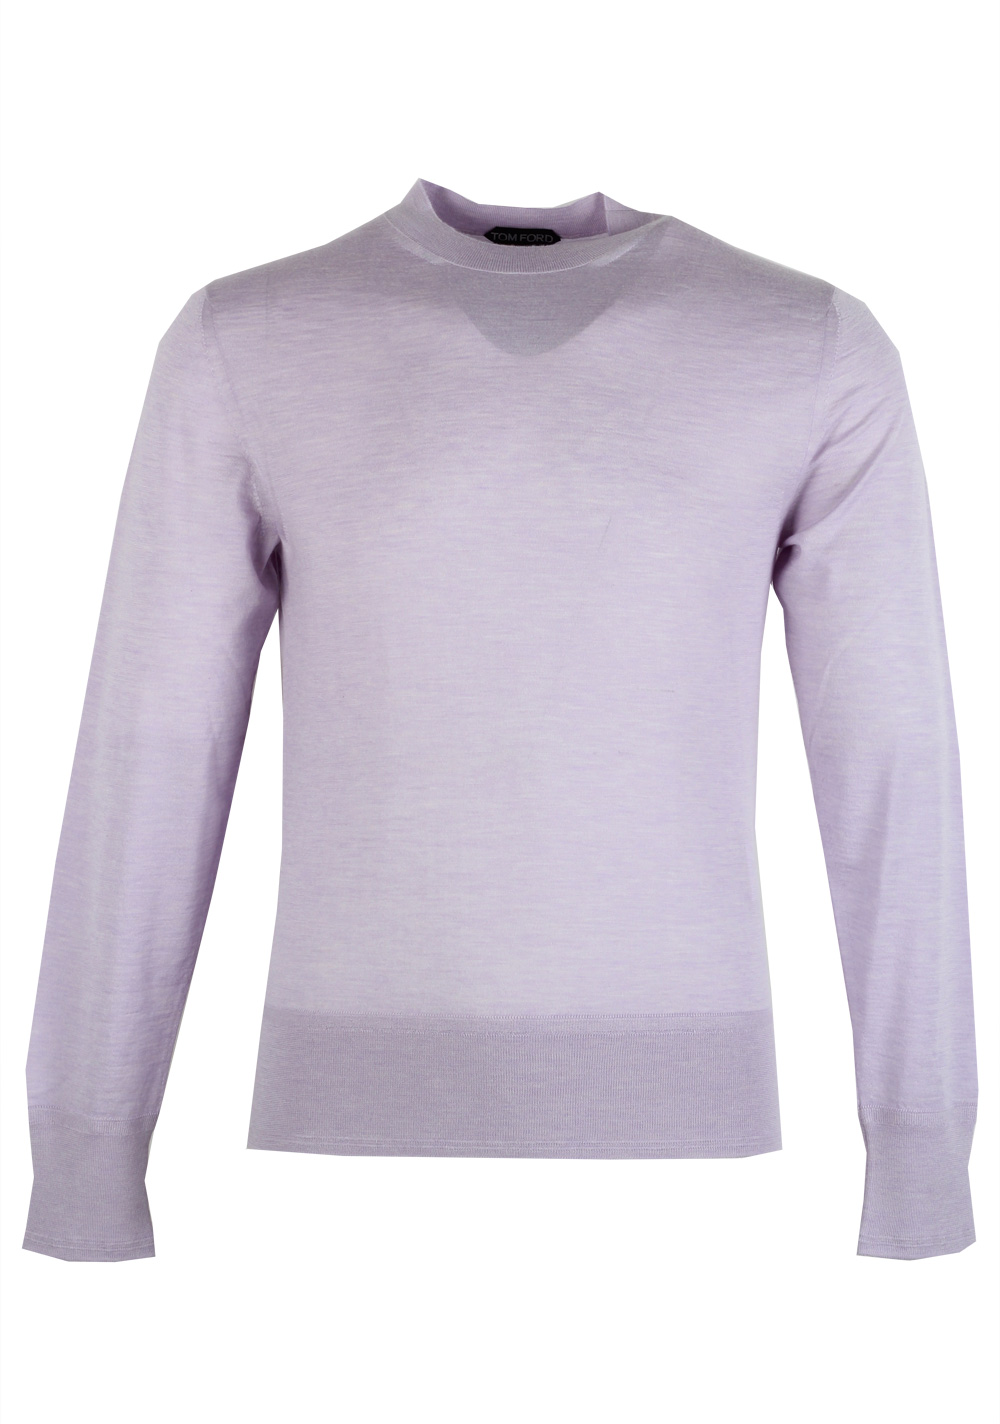 TOM FORD Lilac Crew Neck Sweater Size 48 / 38R U.S. In Cashmere   Costume Limité